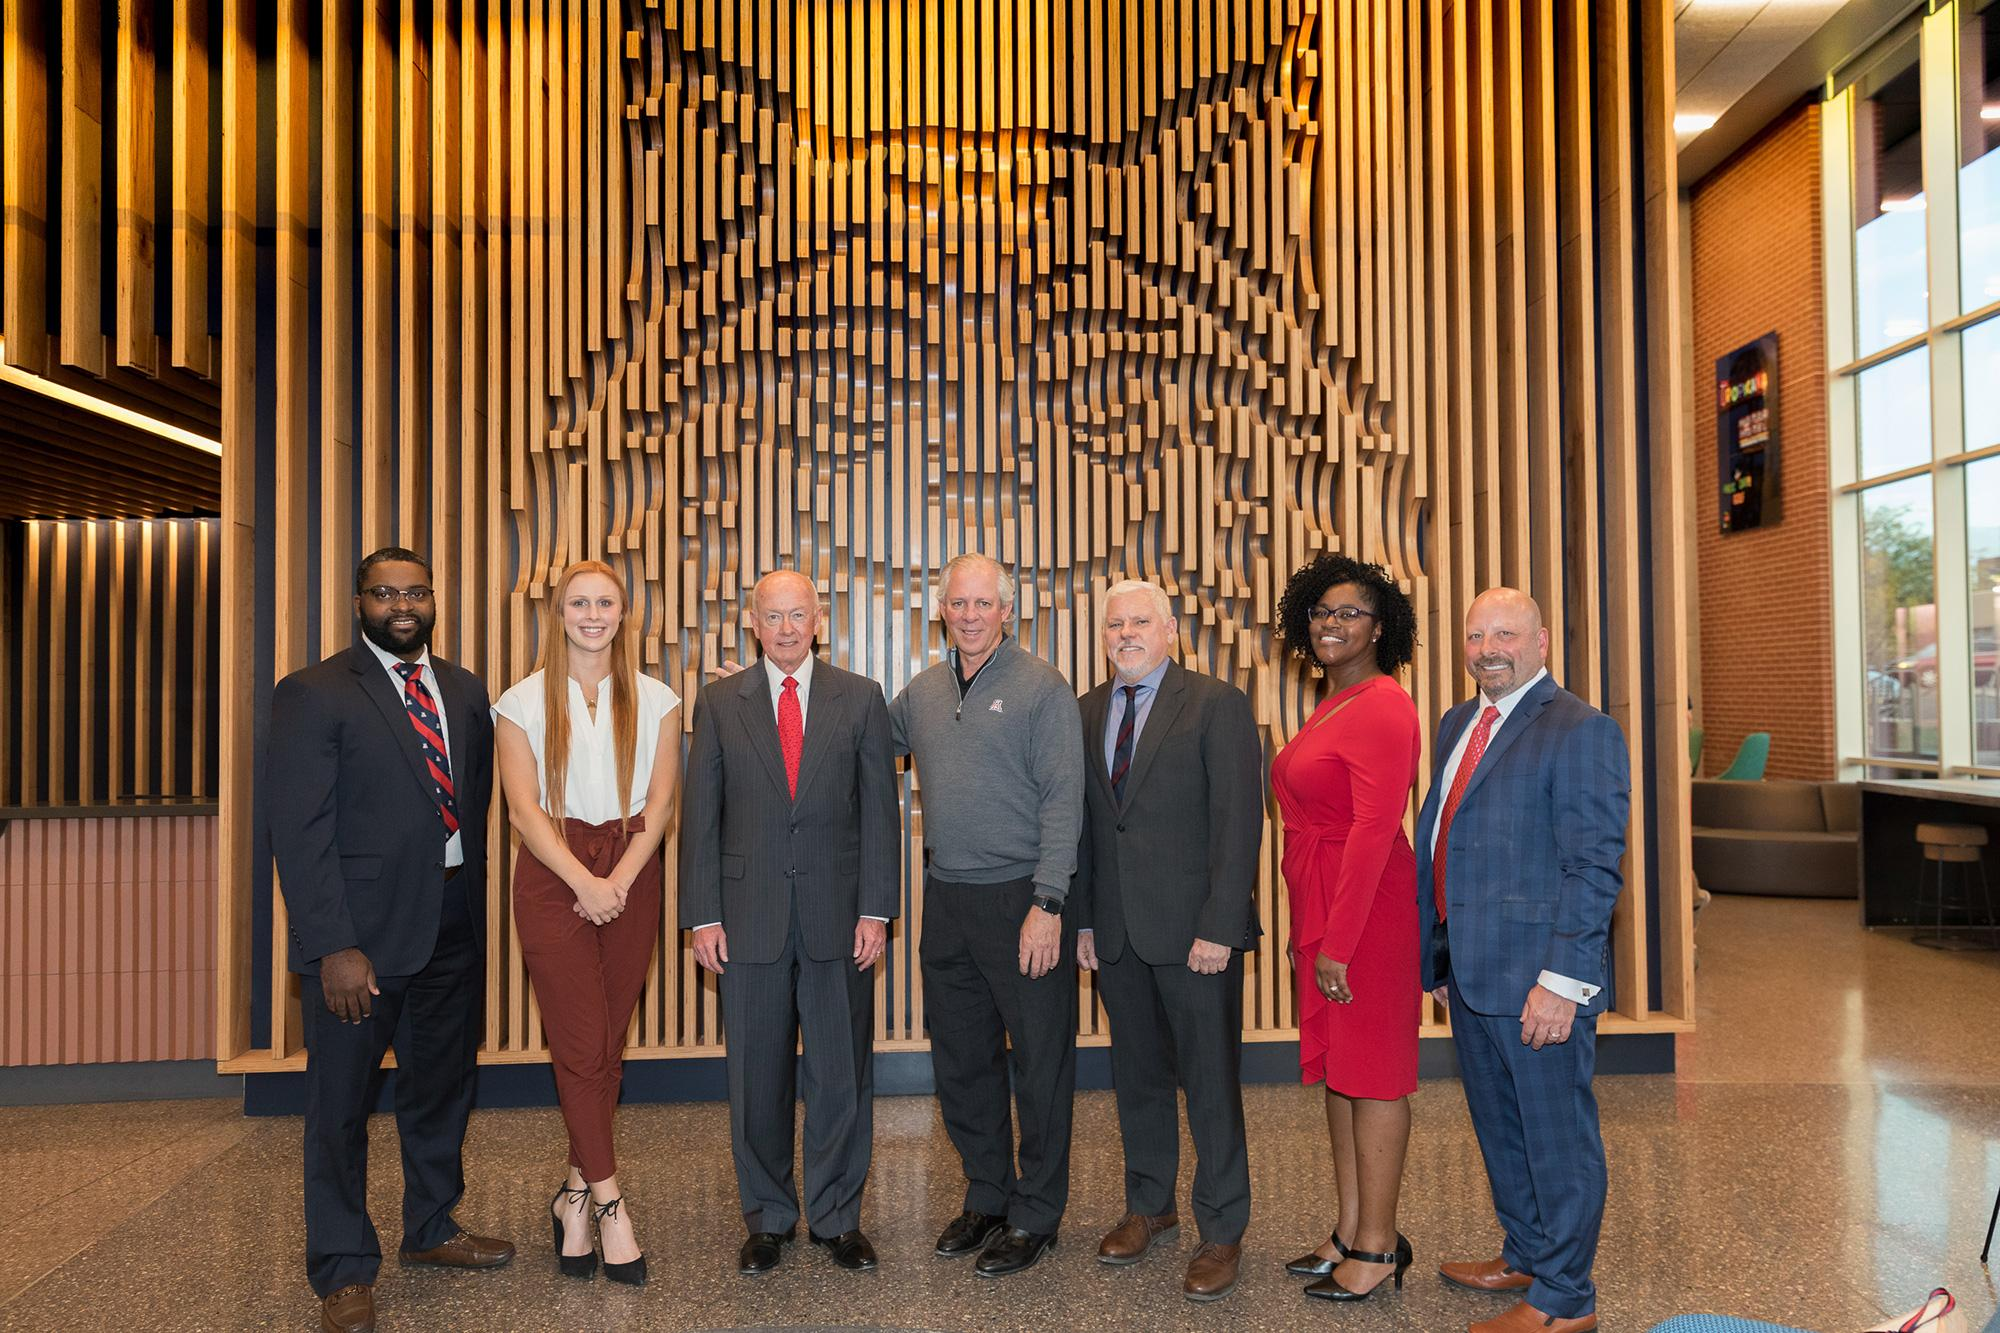 From left: Thomas Harris, assistant athletics director for diversity, inclusion and engagement; Jessy Forelli, Honors College student, Larry Penley, Arizona Board of Regents chairman; UArizona President Robert C. Robbins, Terry L. Hunt, Honors College dea